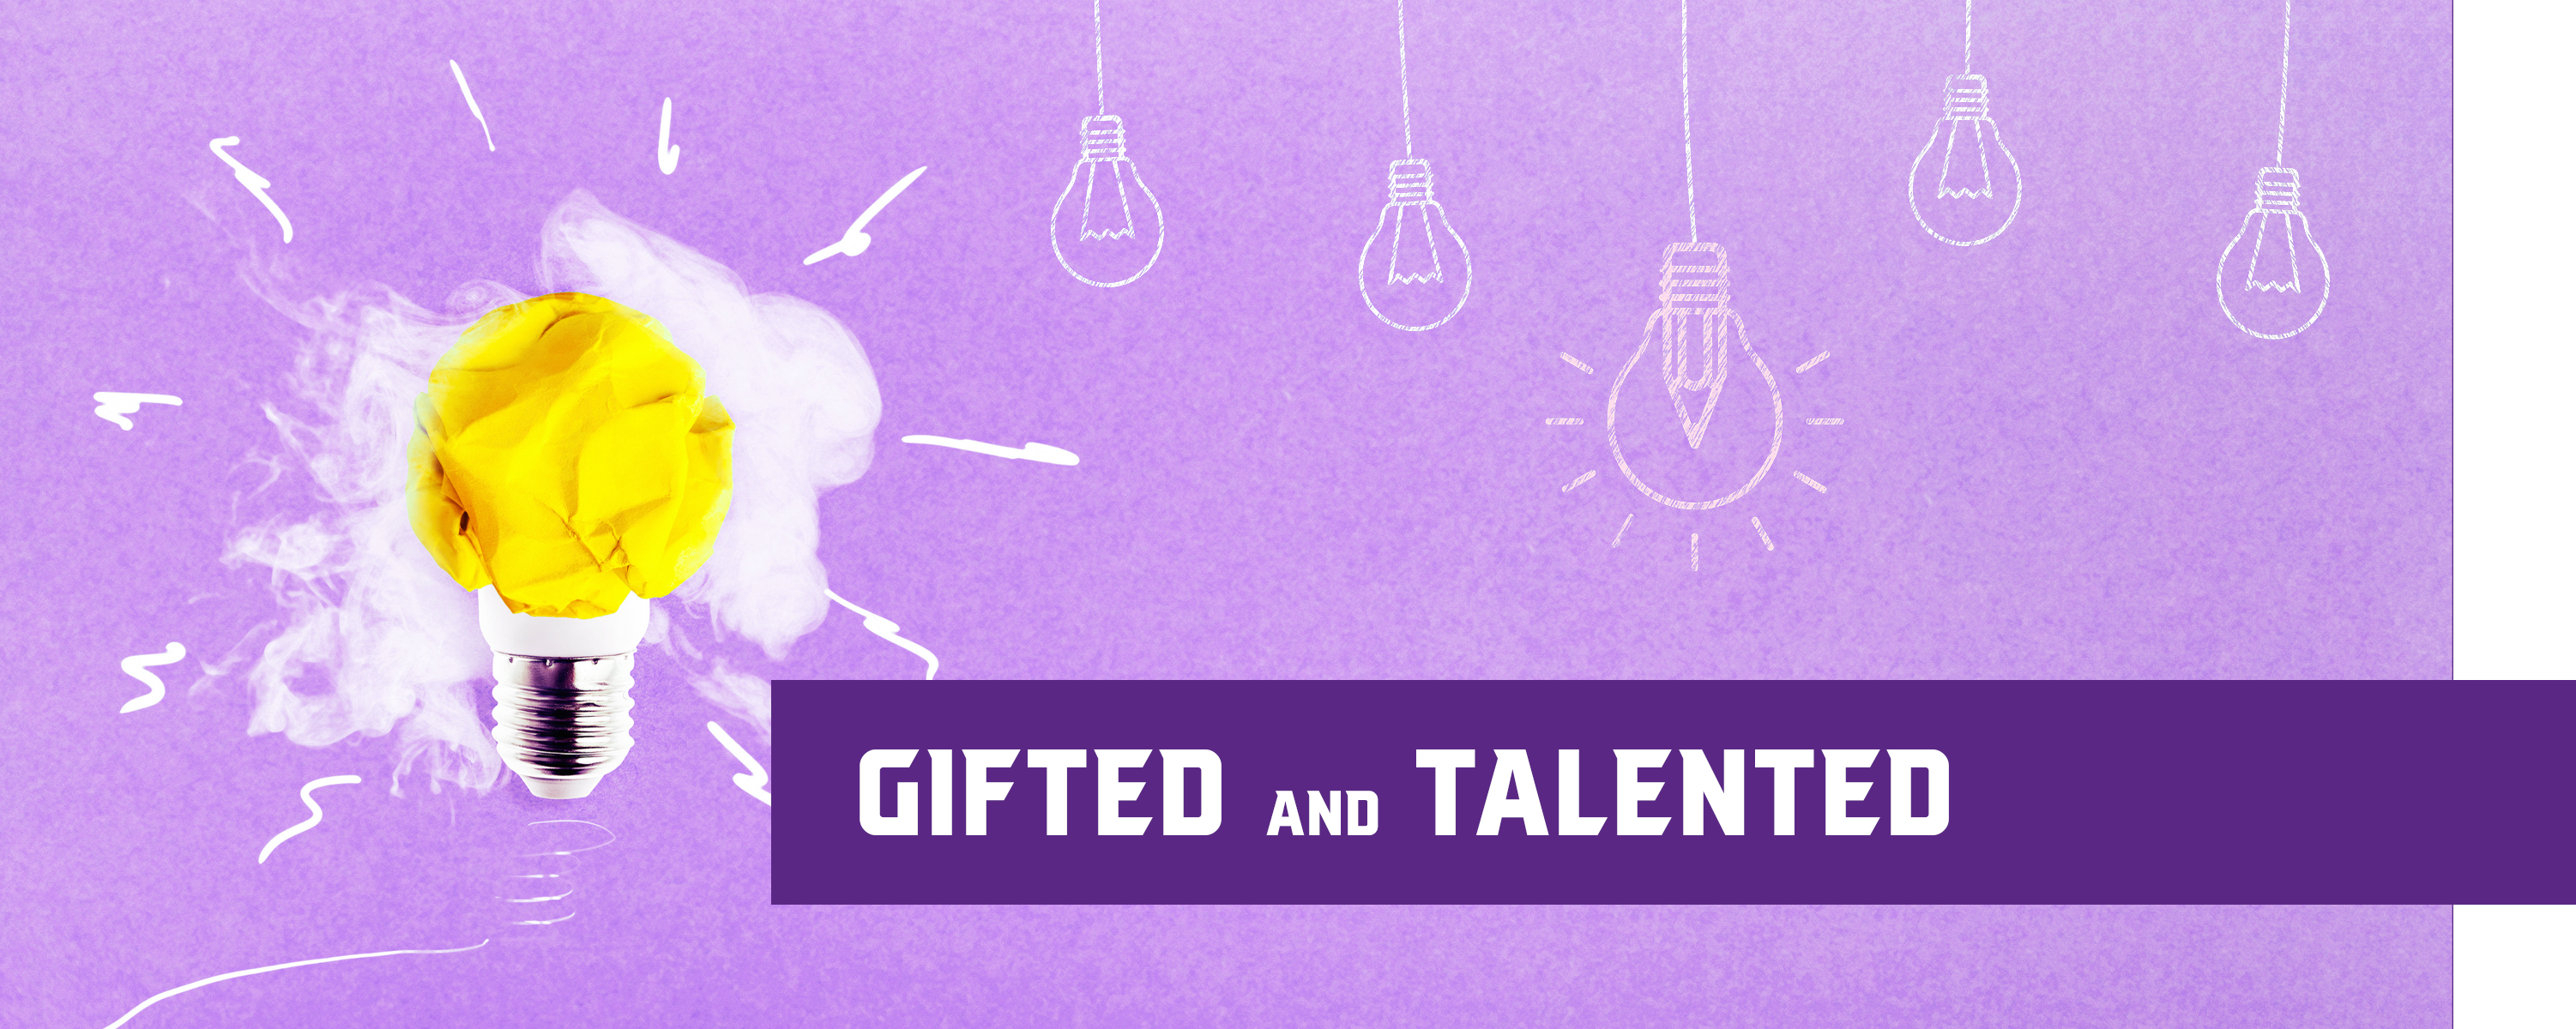 Gifted & Talented website image